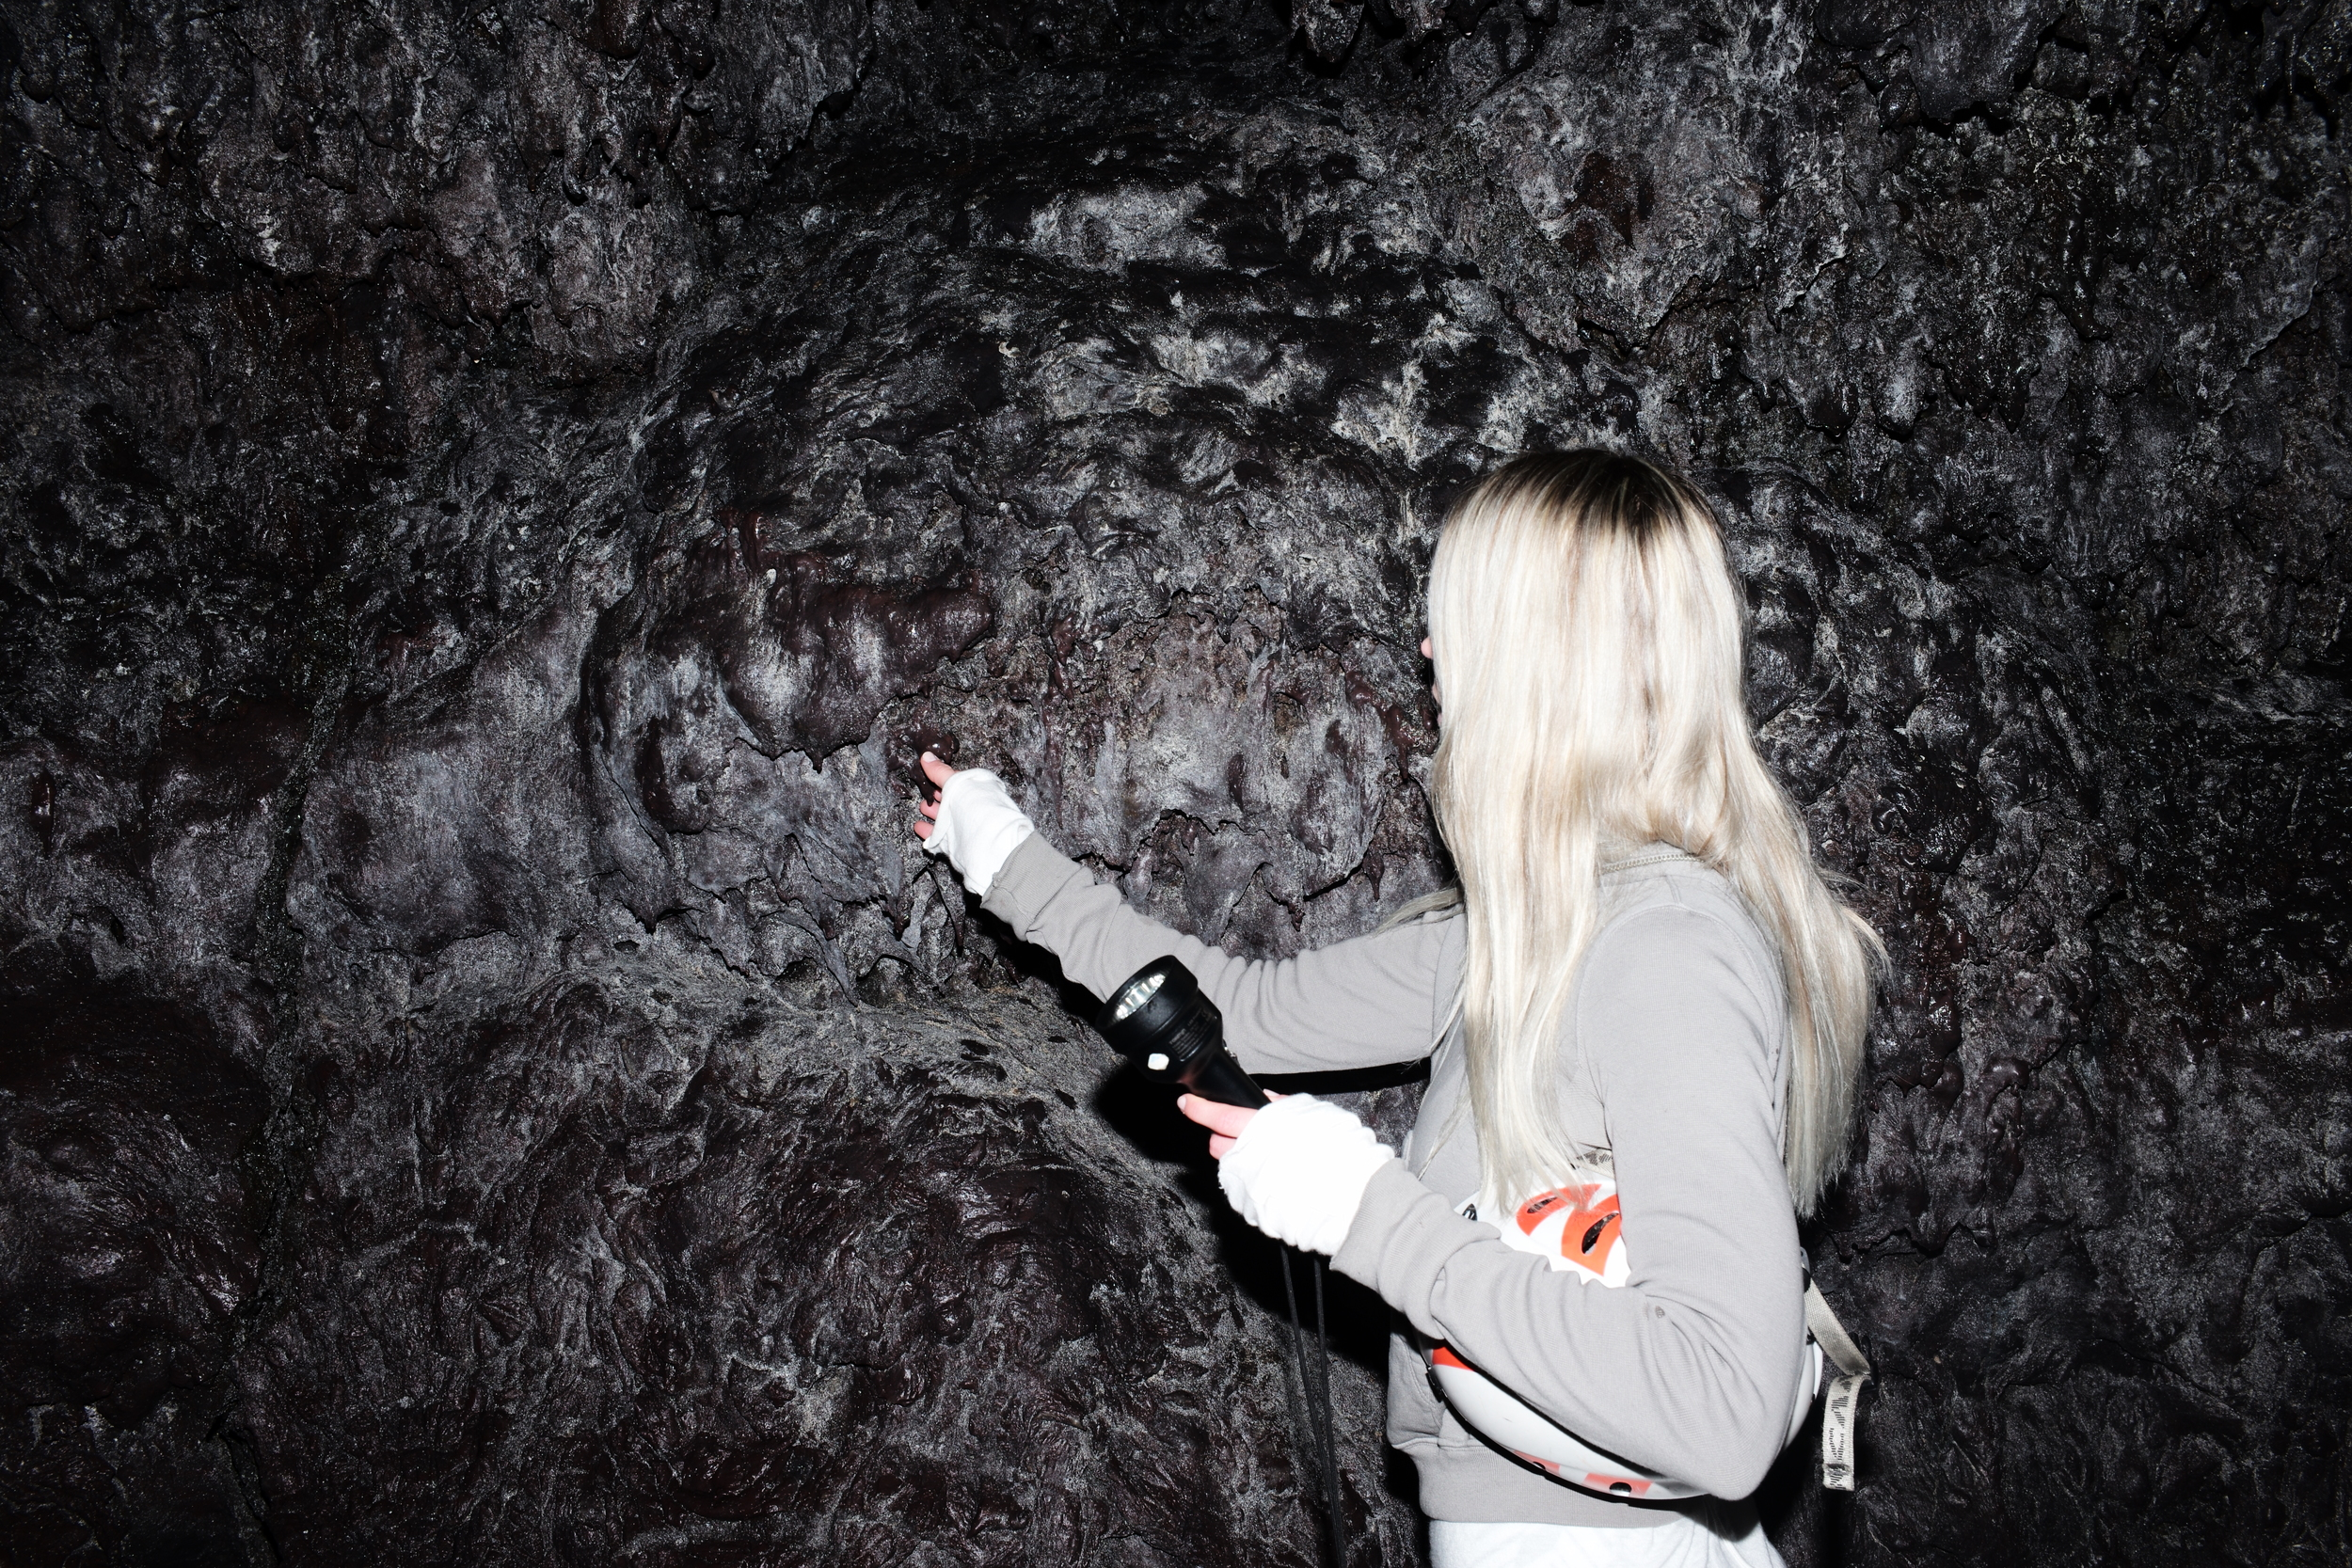 Amazing textures inside the cave